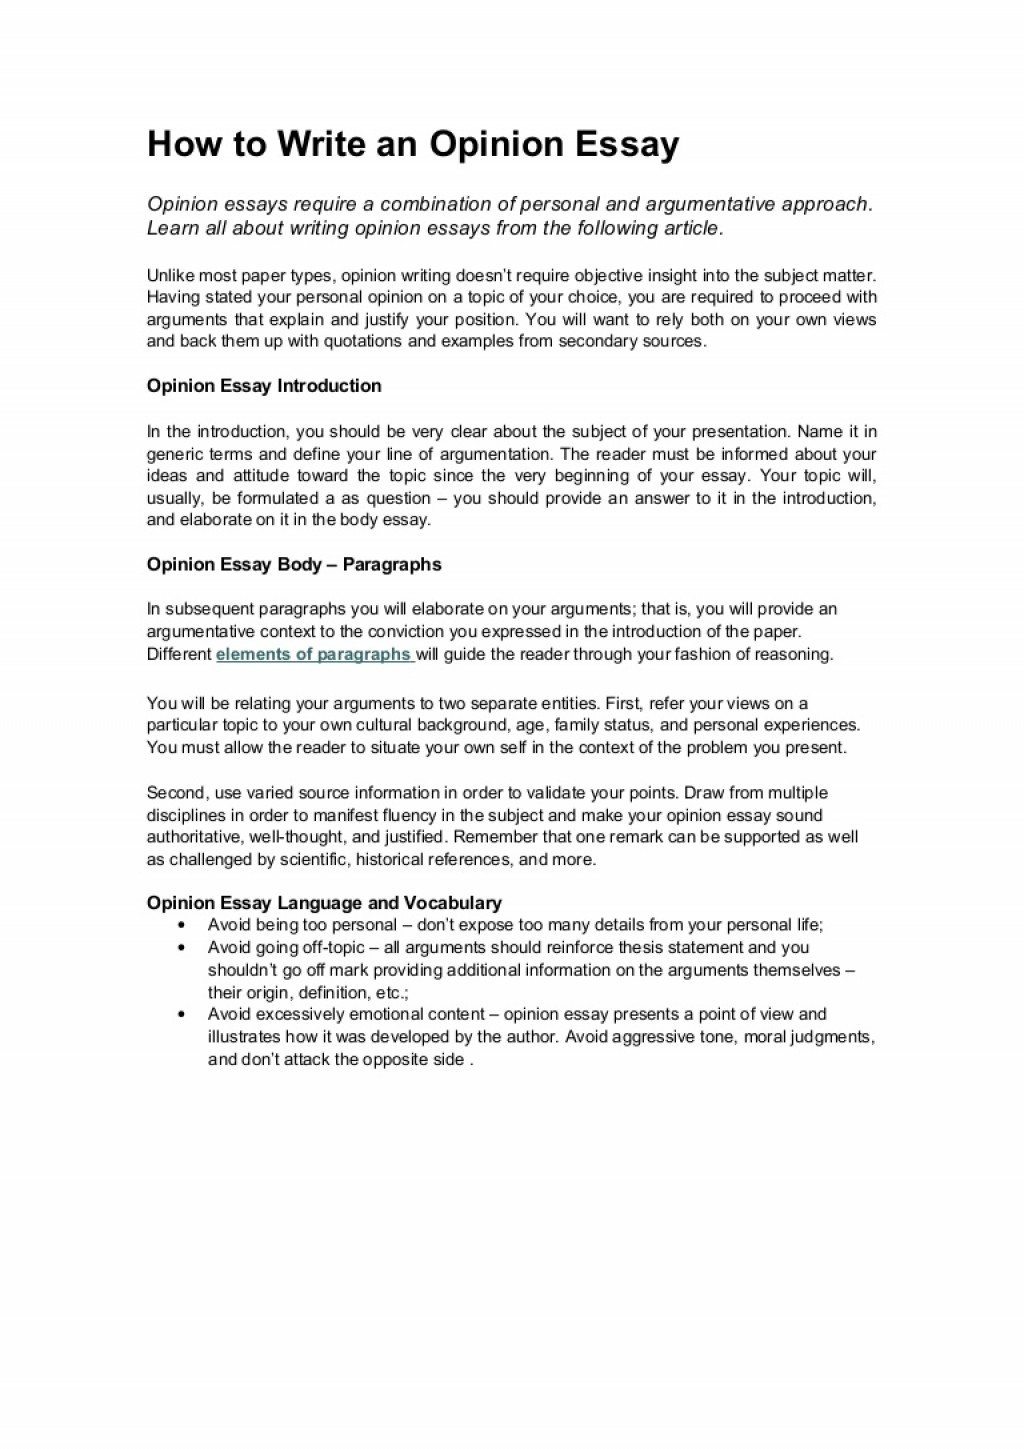 016 Essay Example Tips On Writing Argumentative Essays Sample An How To Start Off Howtowriteanopinionessay Lva1 App6891 Thumbn Write Step By Pdf Ap Lang Conclusion Unique Introduction For Large